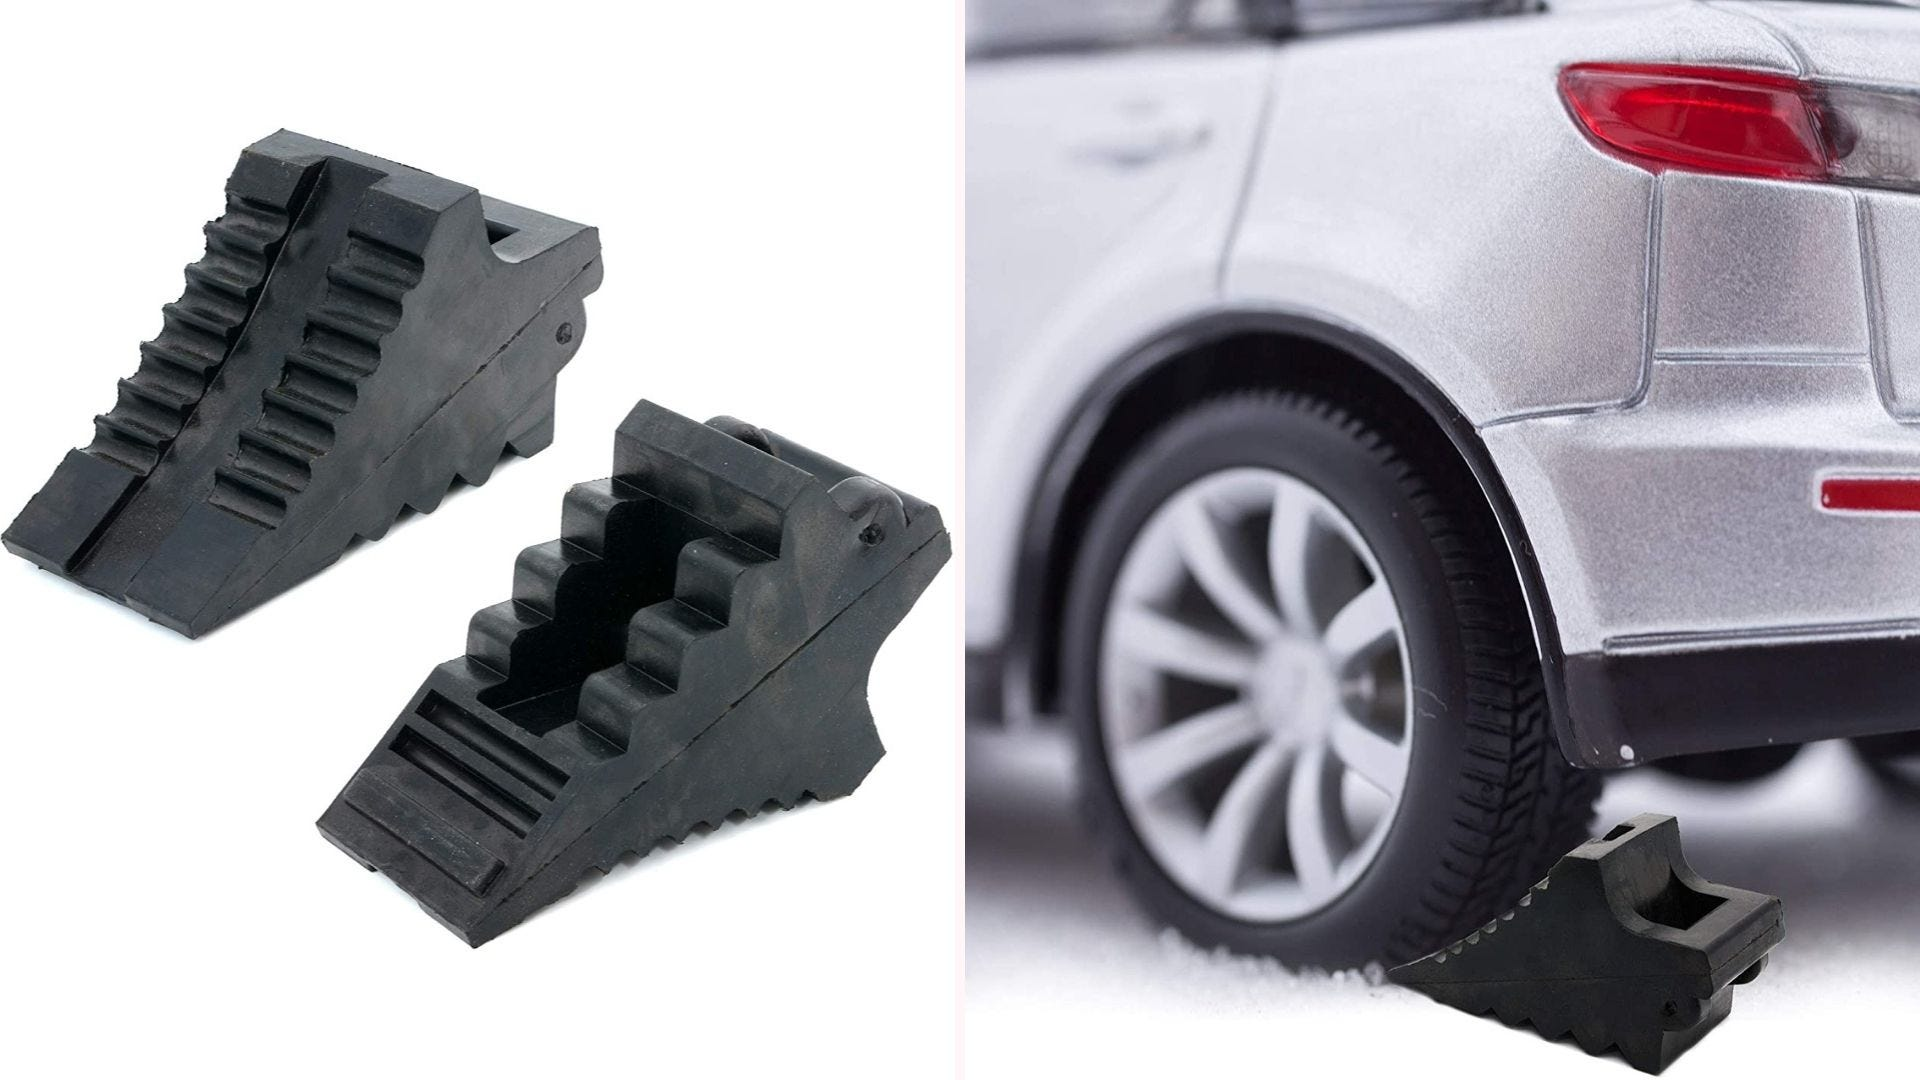 On the left, two black rubber wheel chocks with deep ridges on their surface sit side-by-side. On the right, the wheel chock sits under the tire of a parked vehicle.